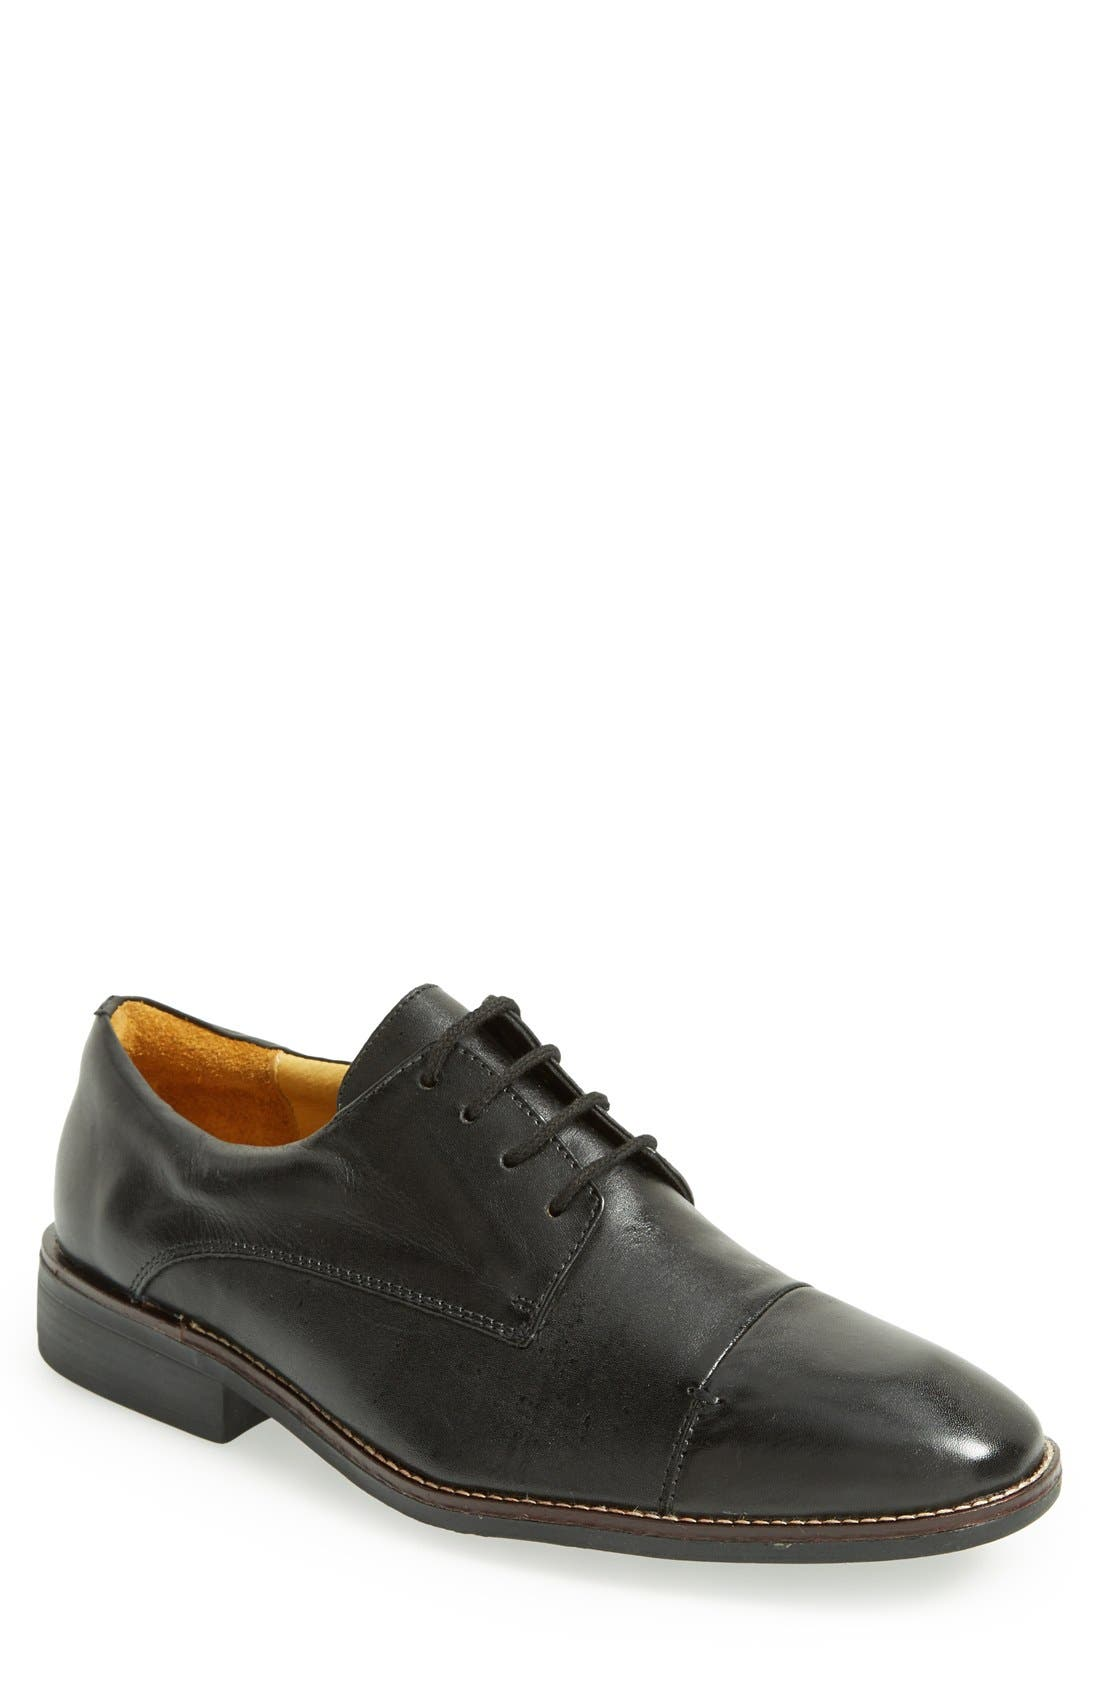 'Irving' Cap Toe Derby,                         Main,                         color, Black